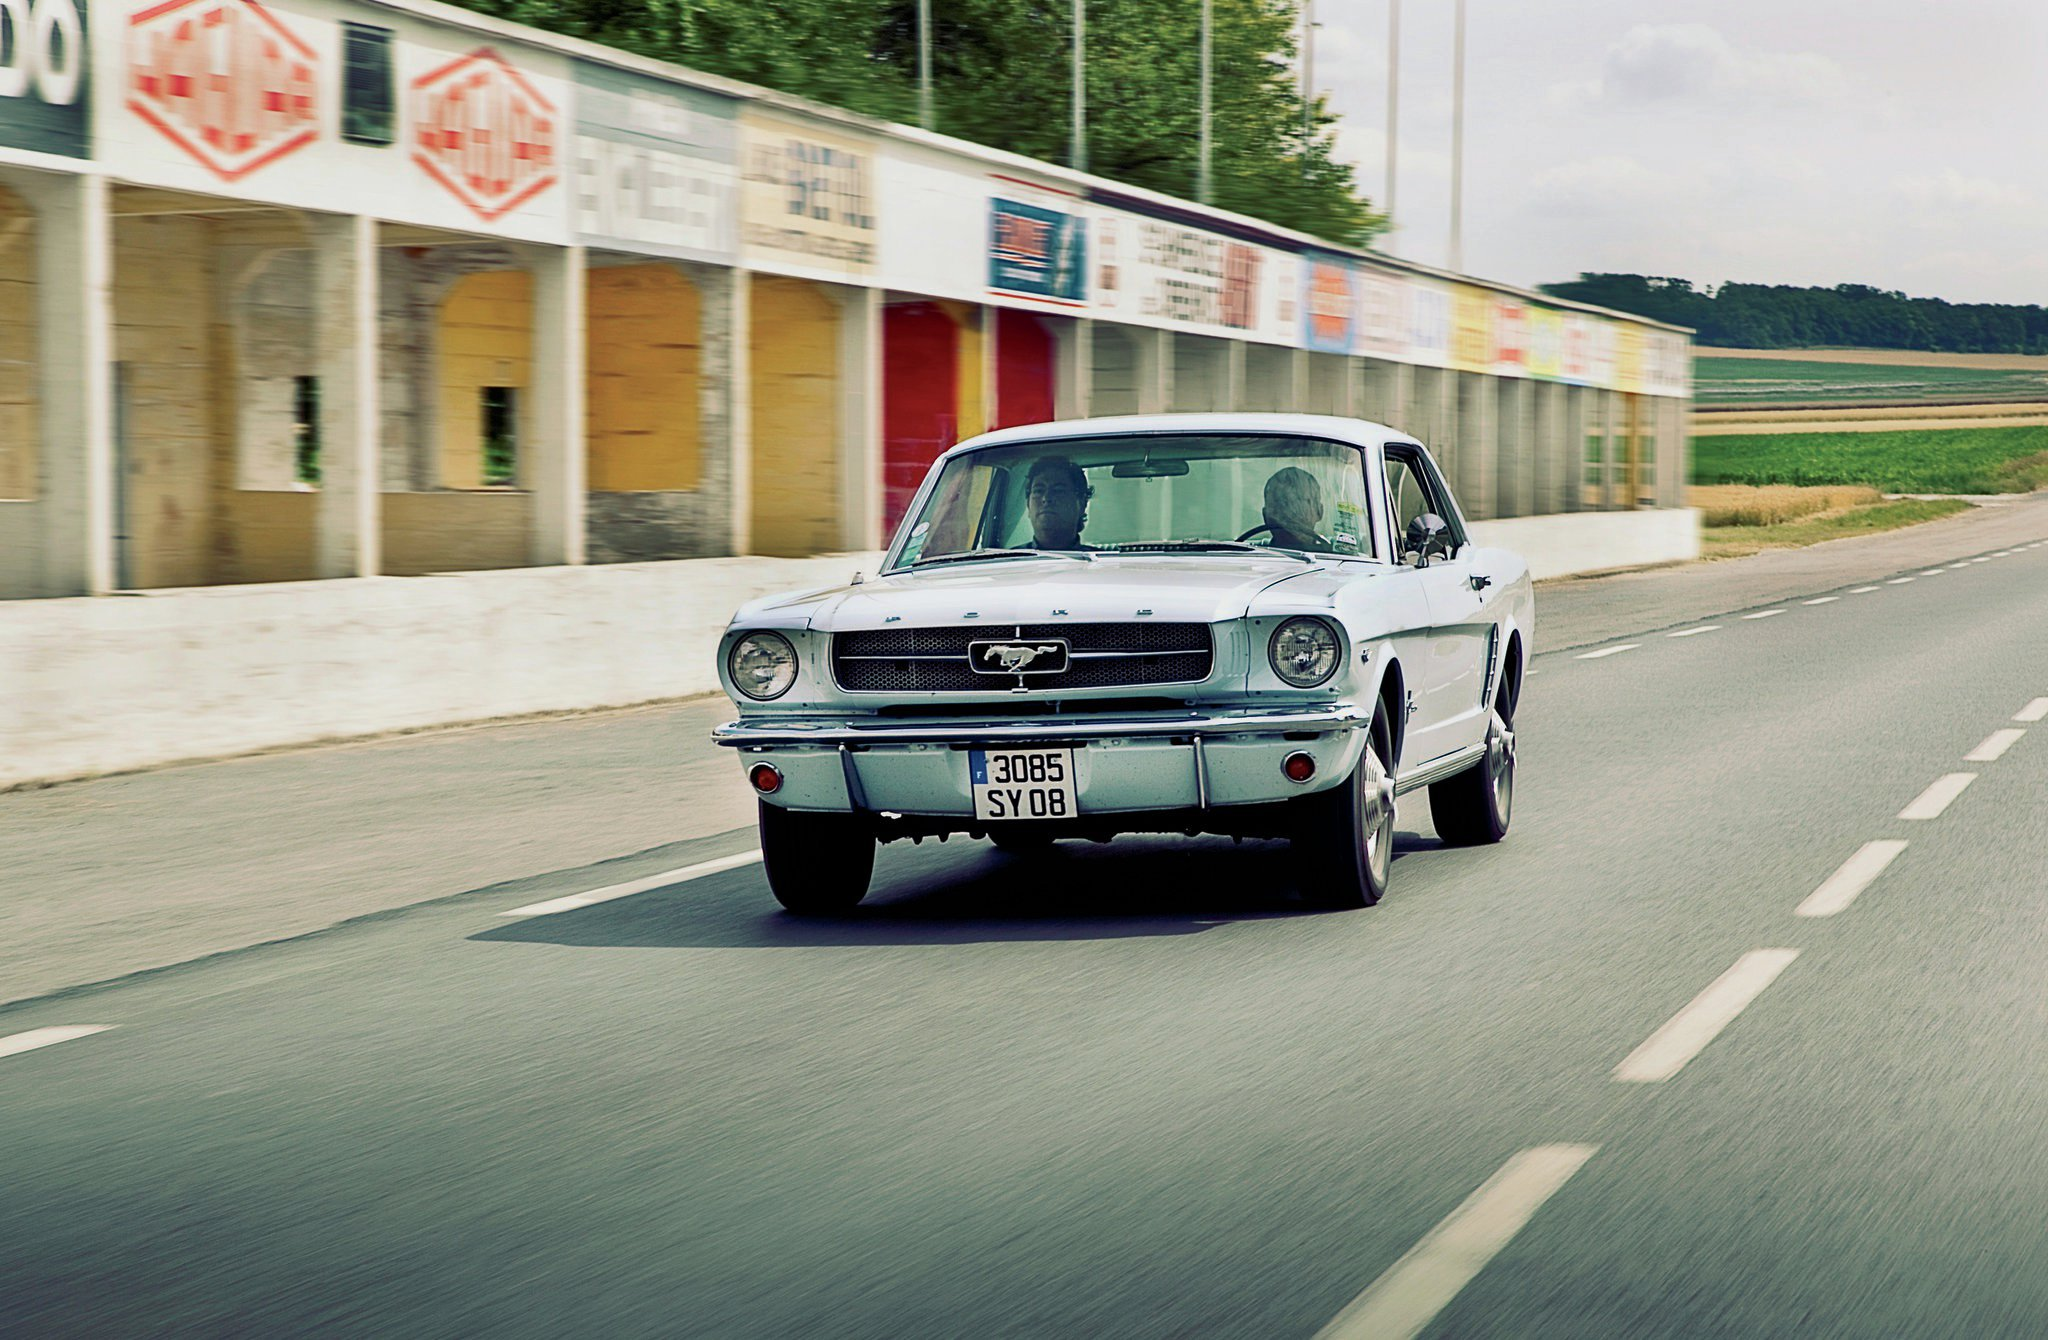 When The 1965 Ford Mustang Won Tour De France Automobile Ranchero Ignition Condition Modified Mustangs Fords